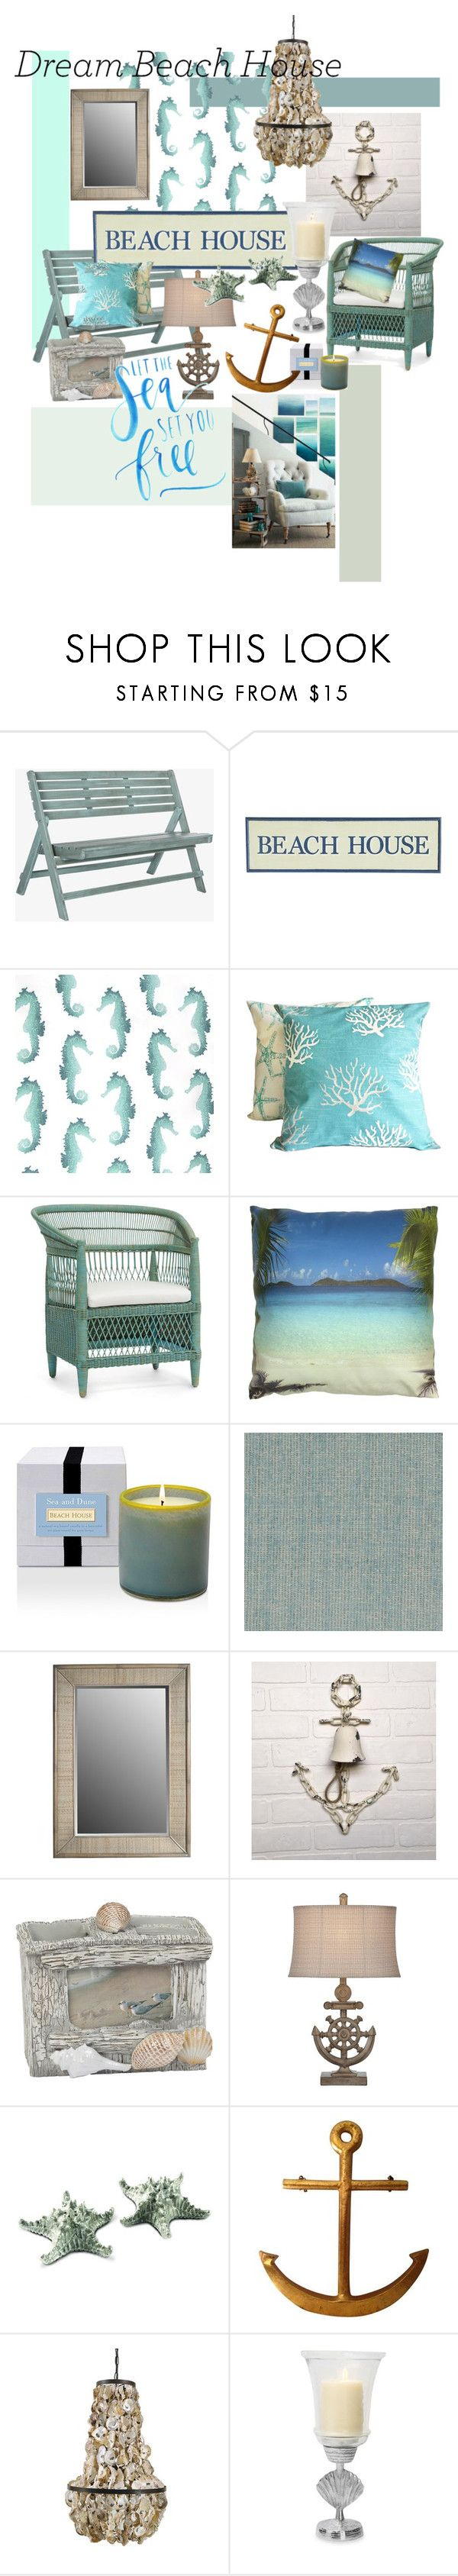 """""""Beach house"""" by charisloves ❤ liked on Polyvore featuring interior, interiors, interior design, home, home decor, interior decorating, Safavieh, Pier 1 Imports, DutchCrafters and Quahog Bay Bedding"""